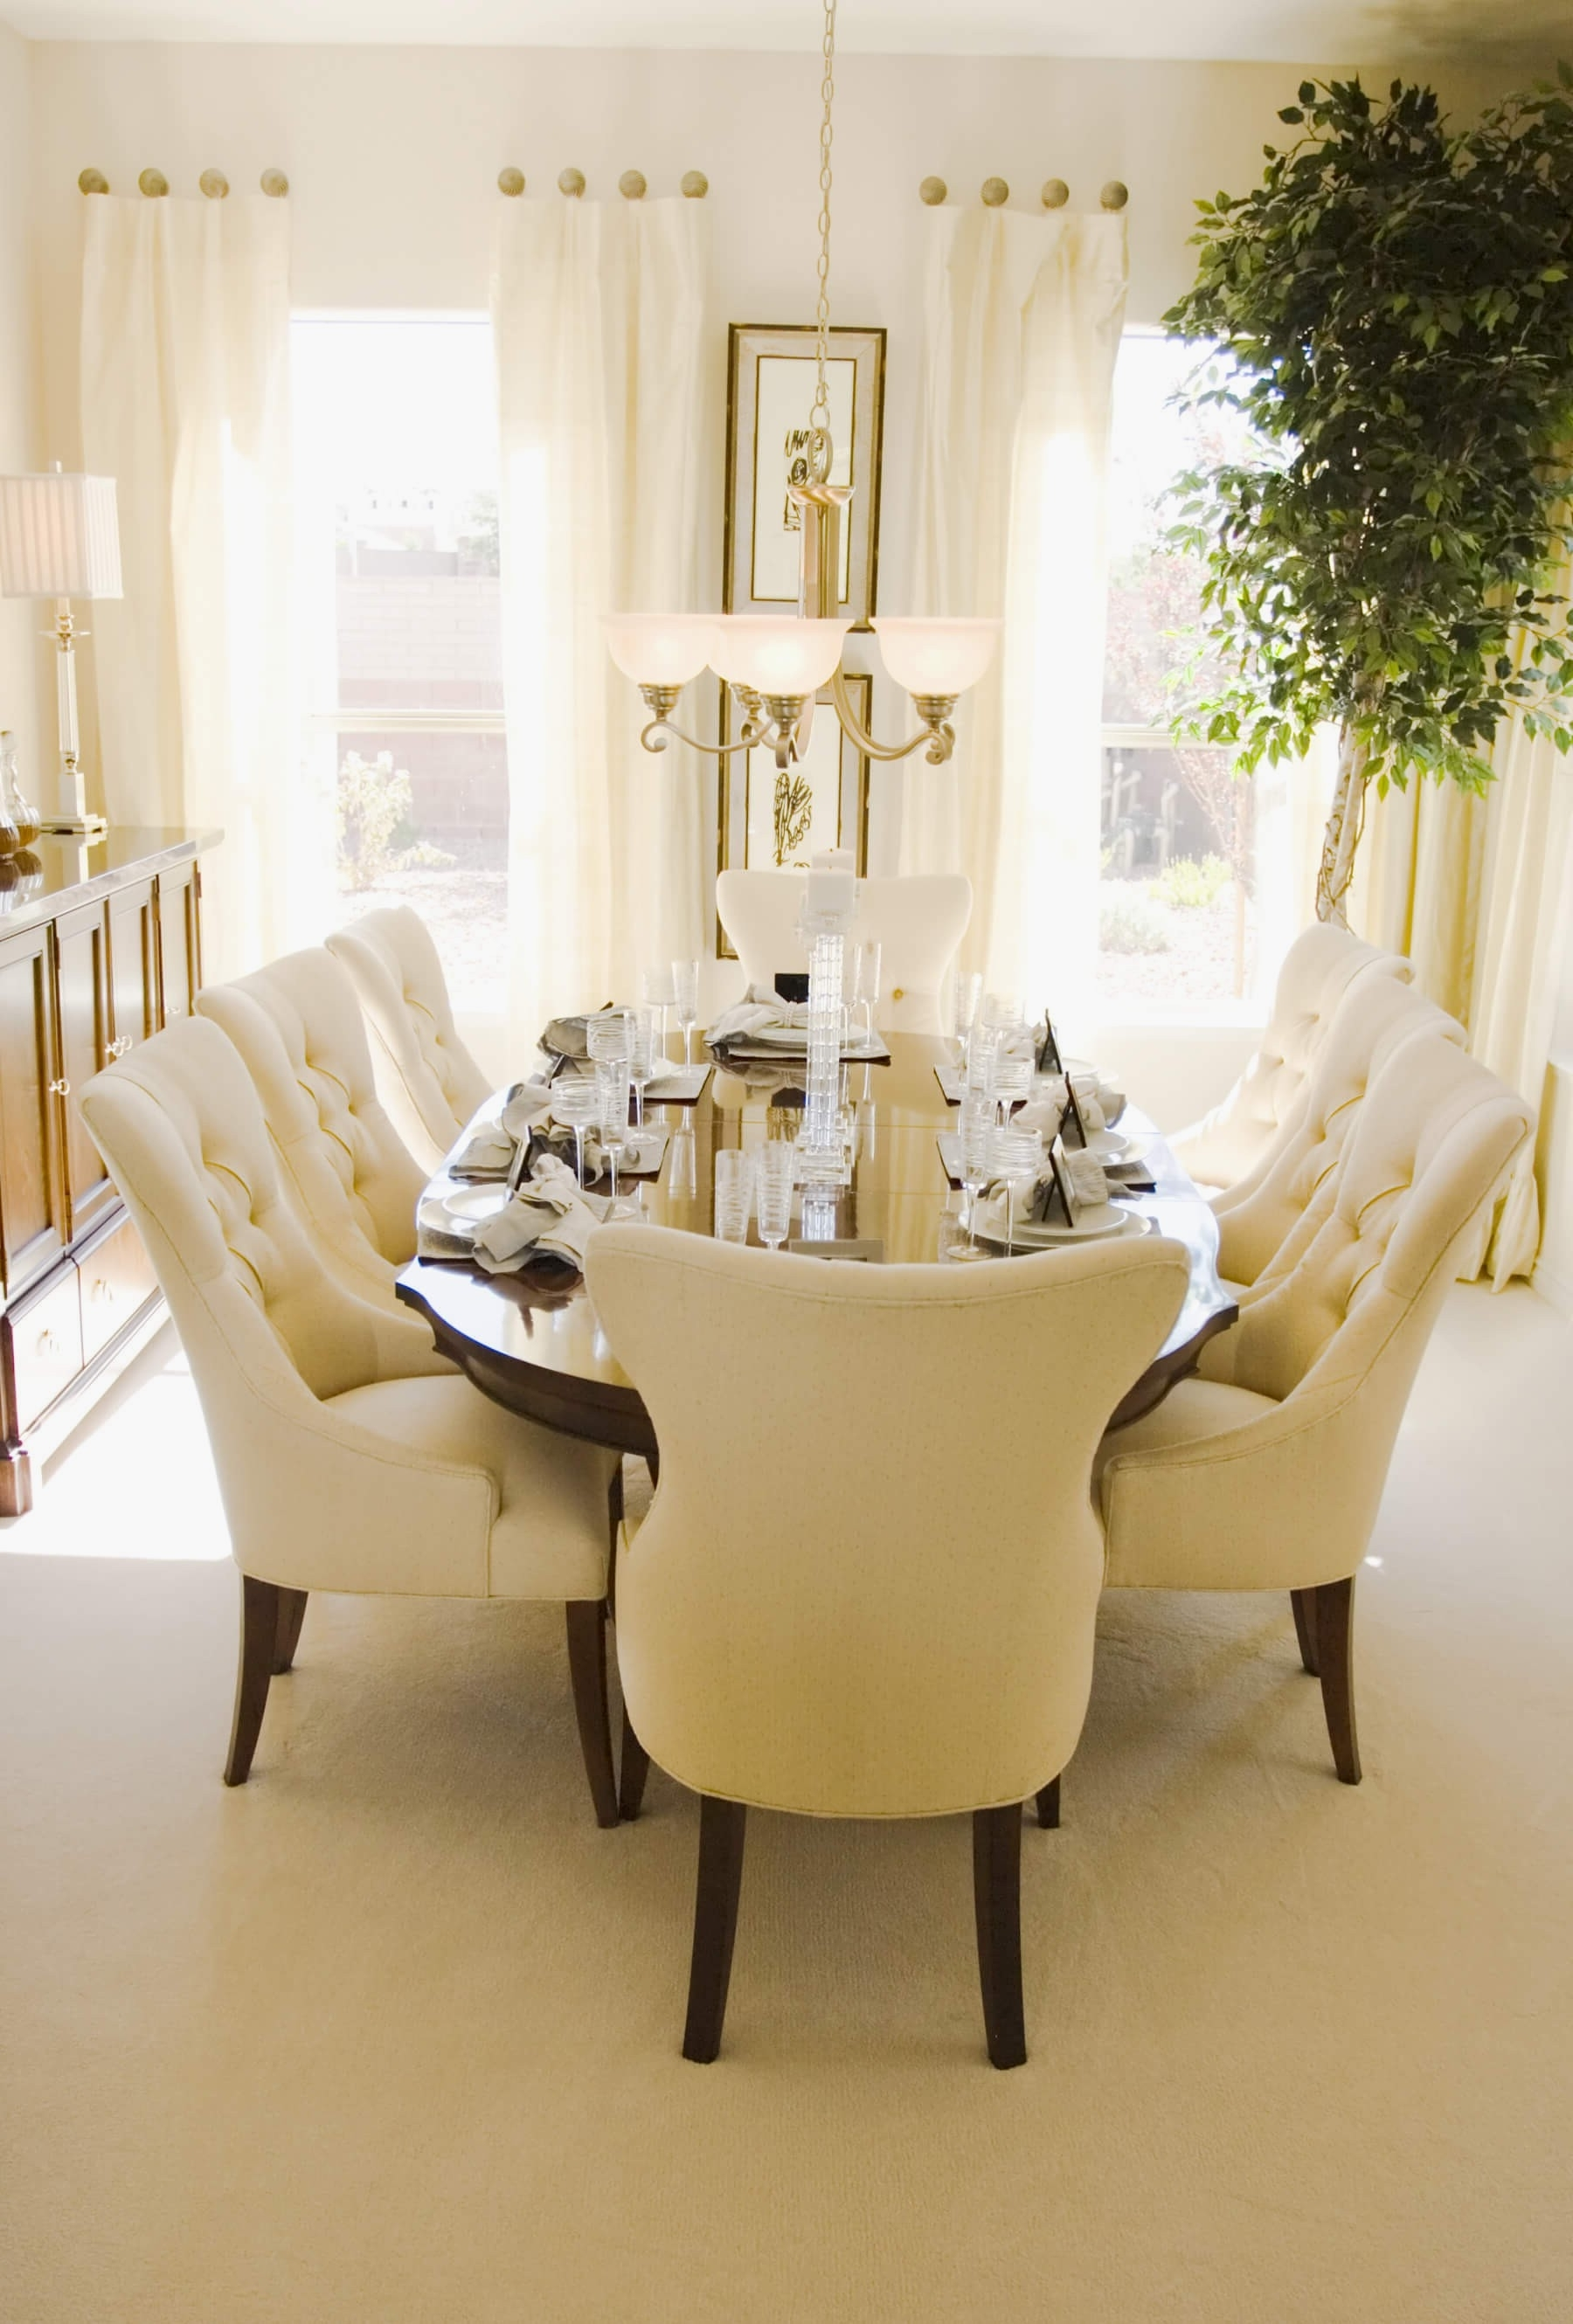 Well Known Cream Dining Table Sets Lovely Andalusia Home Decor Intended For Cream Dining Tables And Chairs (View 6 of 25)